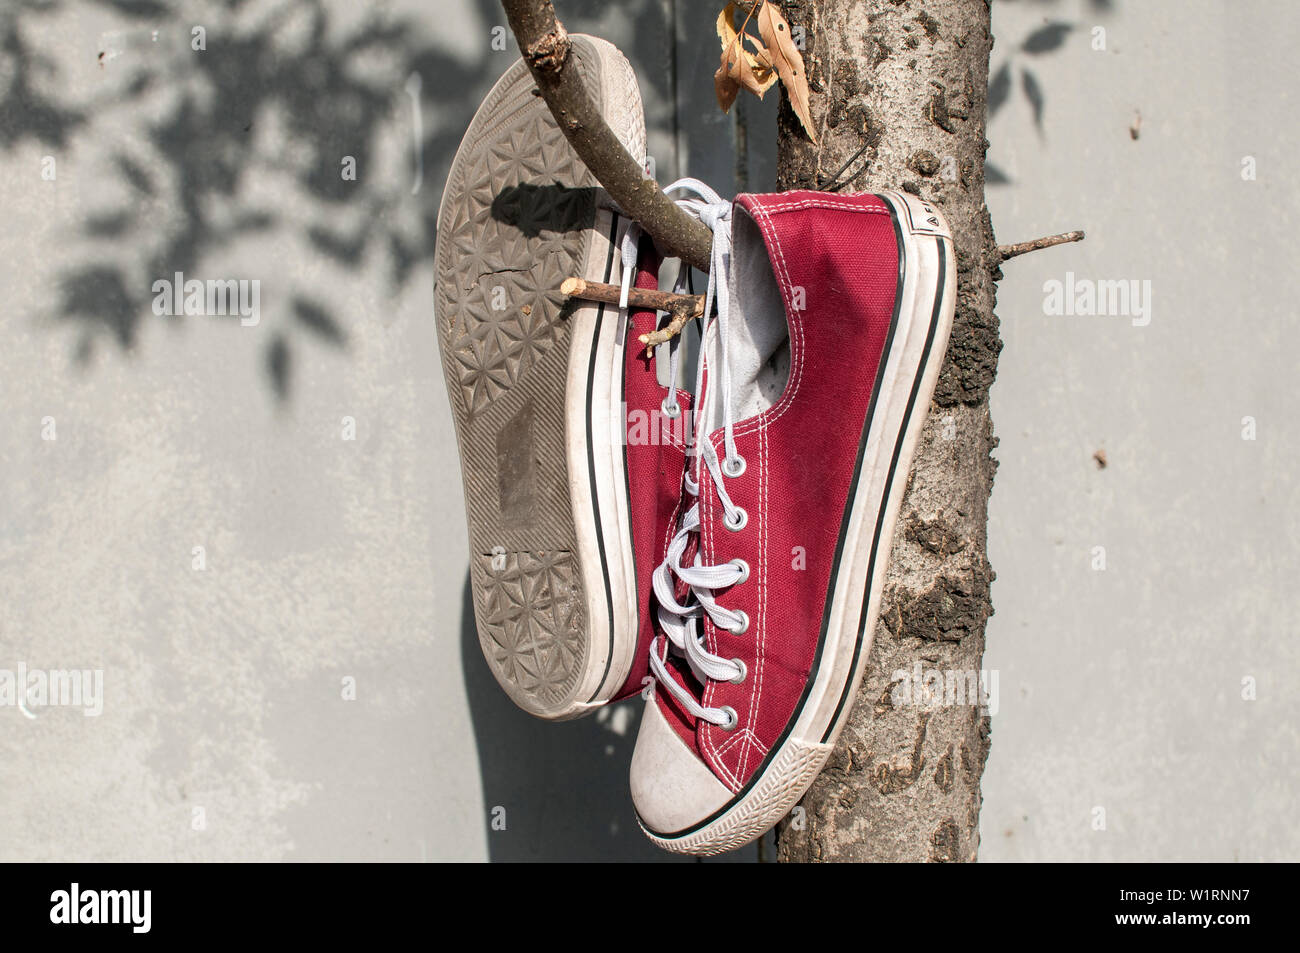 45355ba4b88fcb Pair of worn out vintage red old canvas sneakers hanging on their laced  ties - Stock